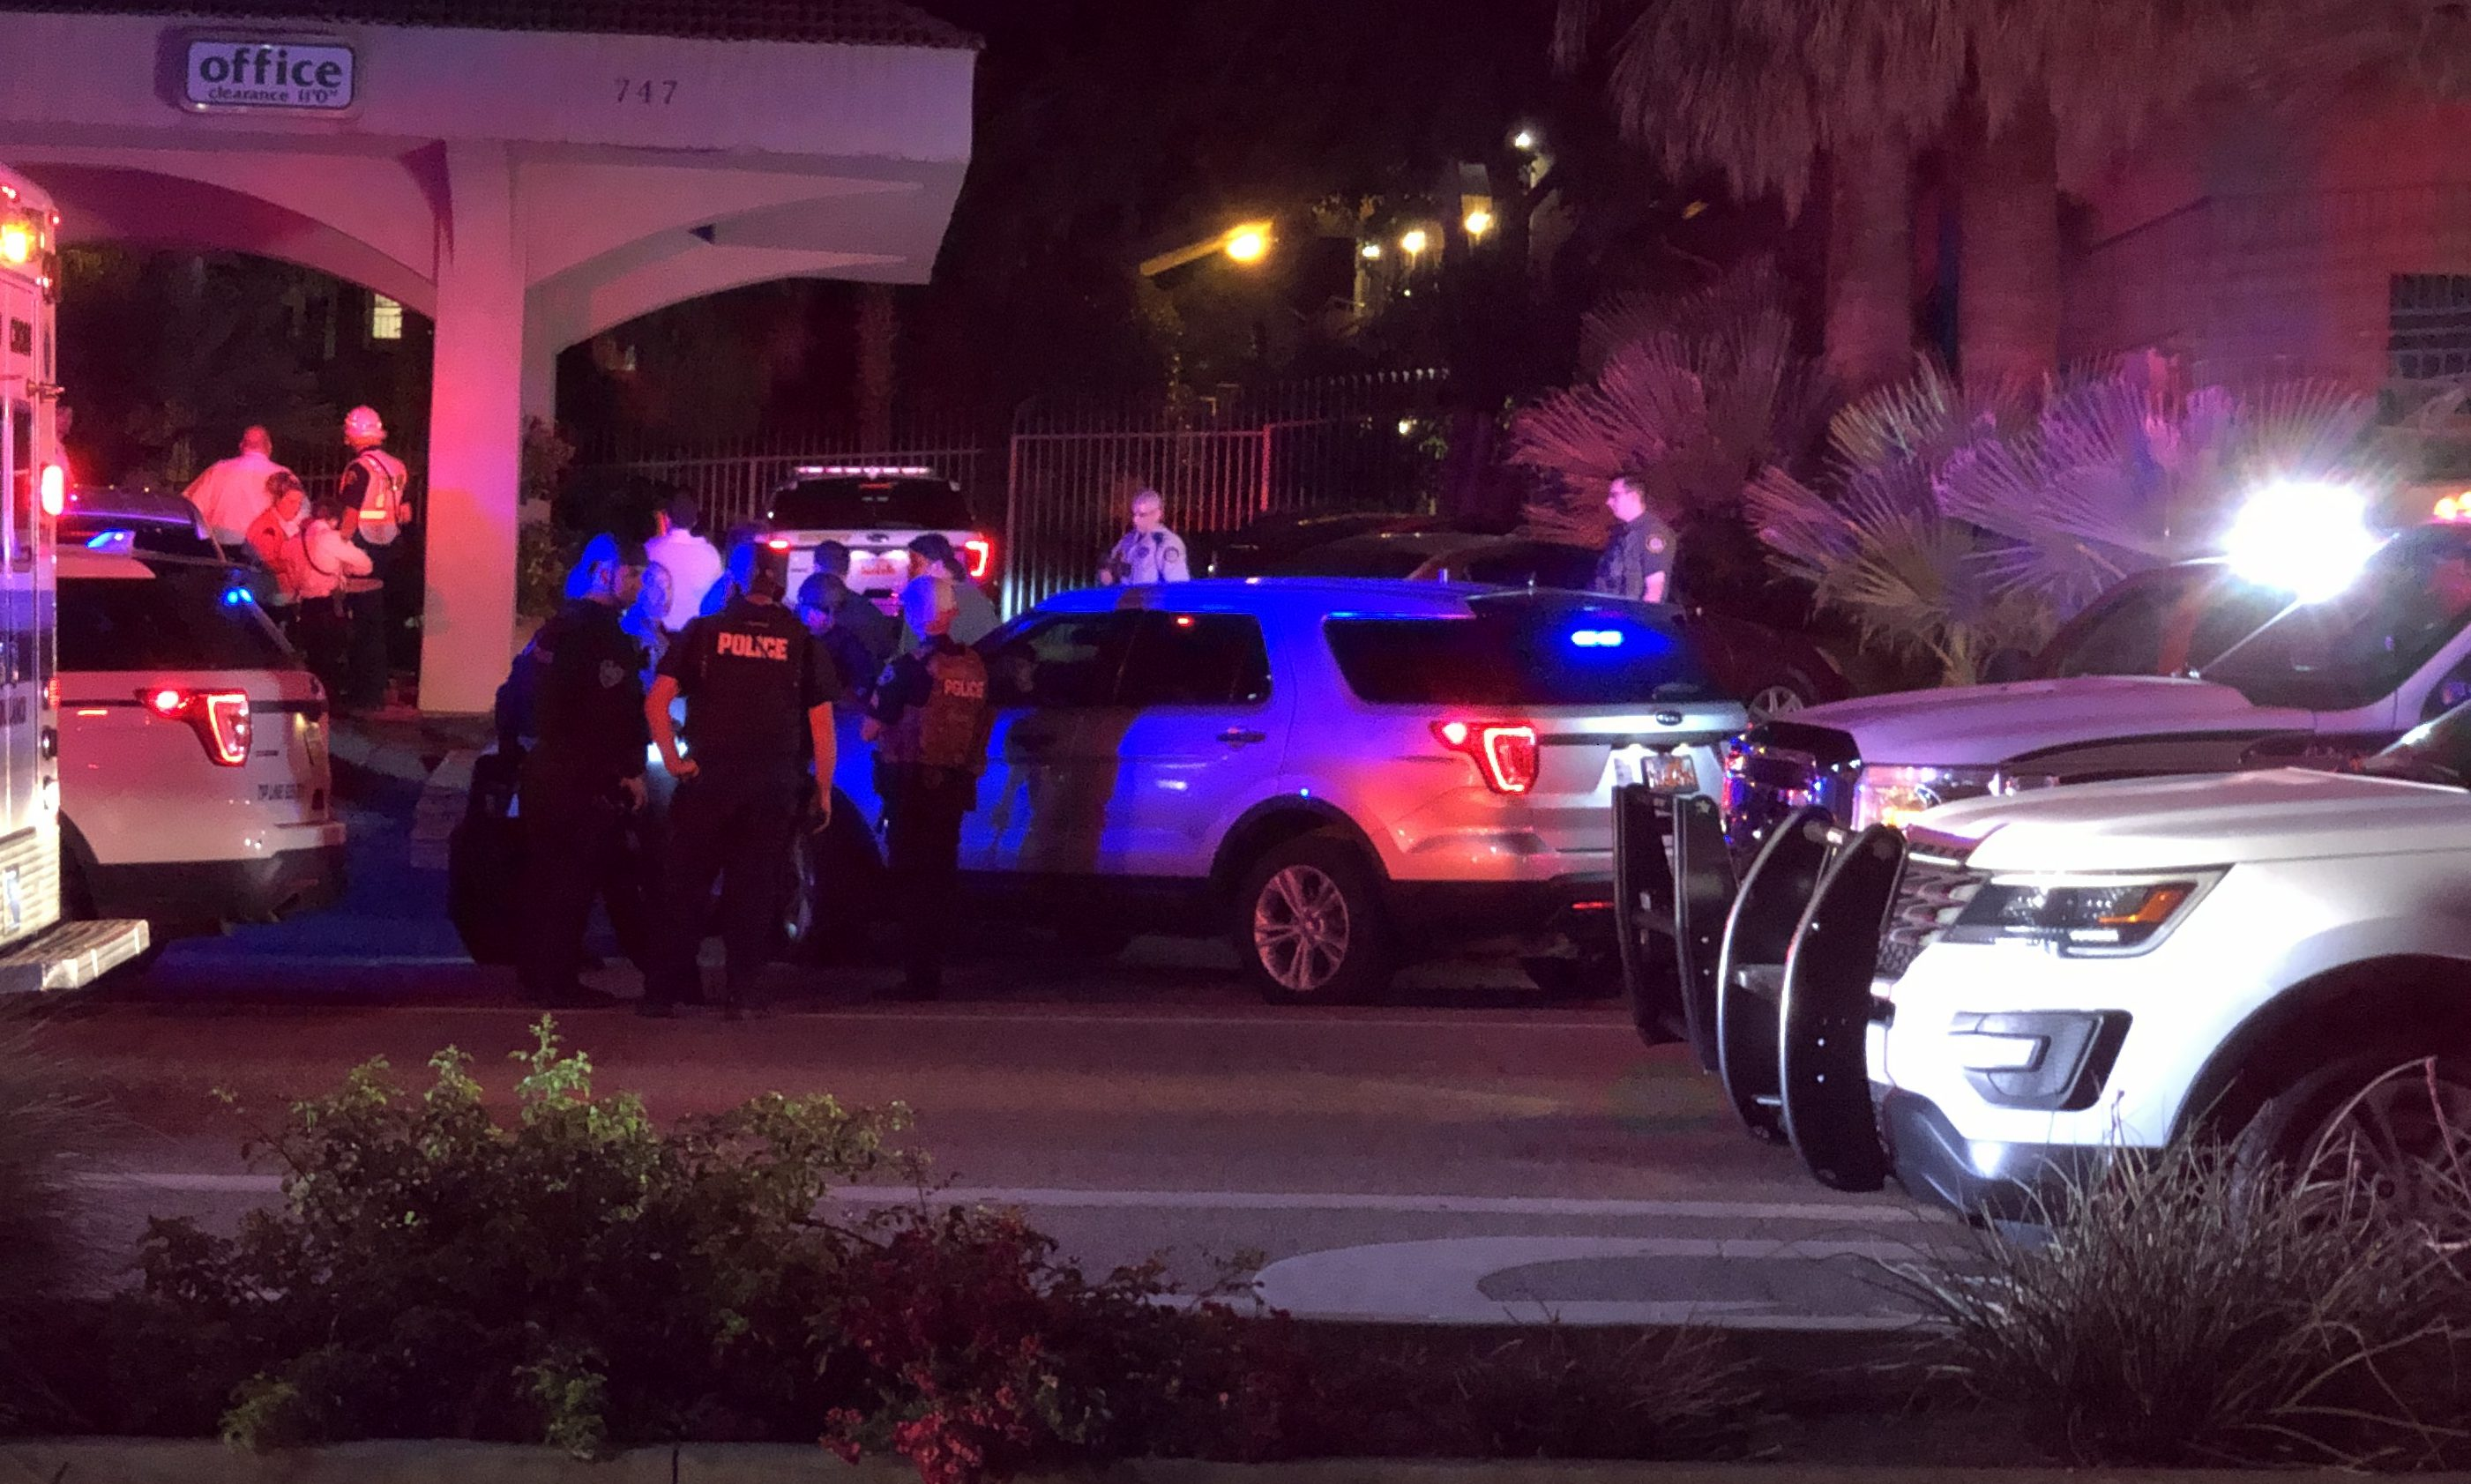 Police arrest 5 after riot at St  George treatment center